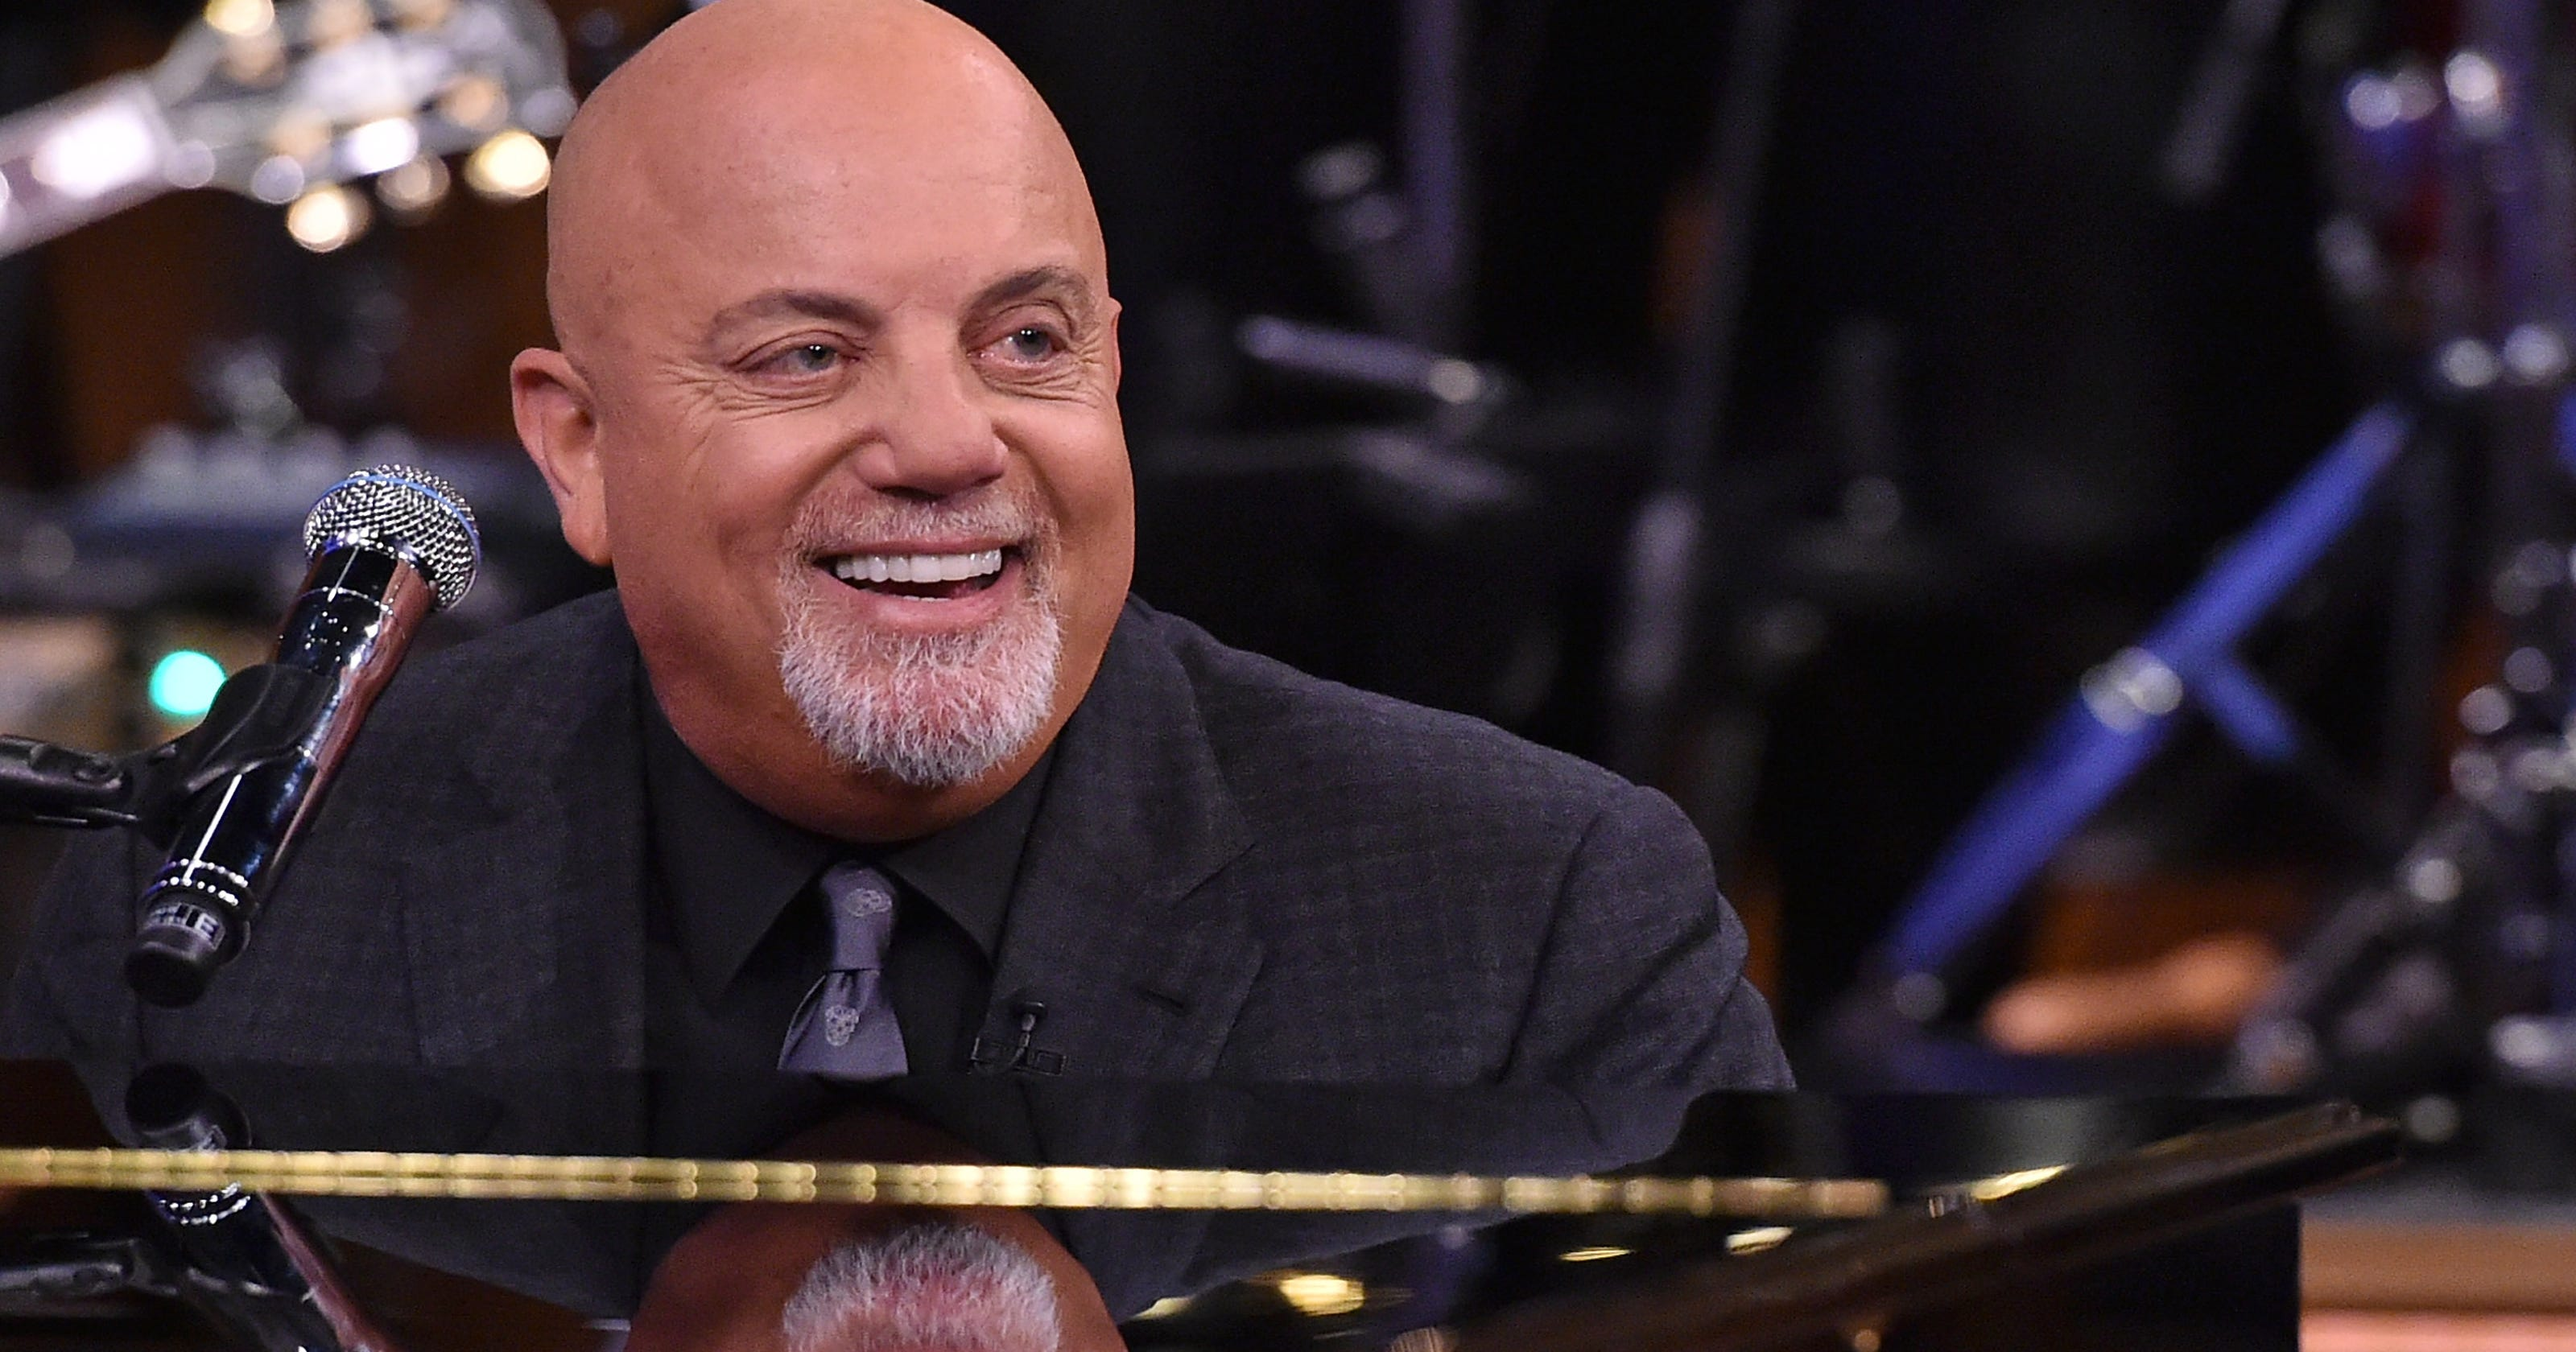 Some Billy Joel tickets down to single seats